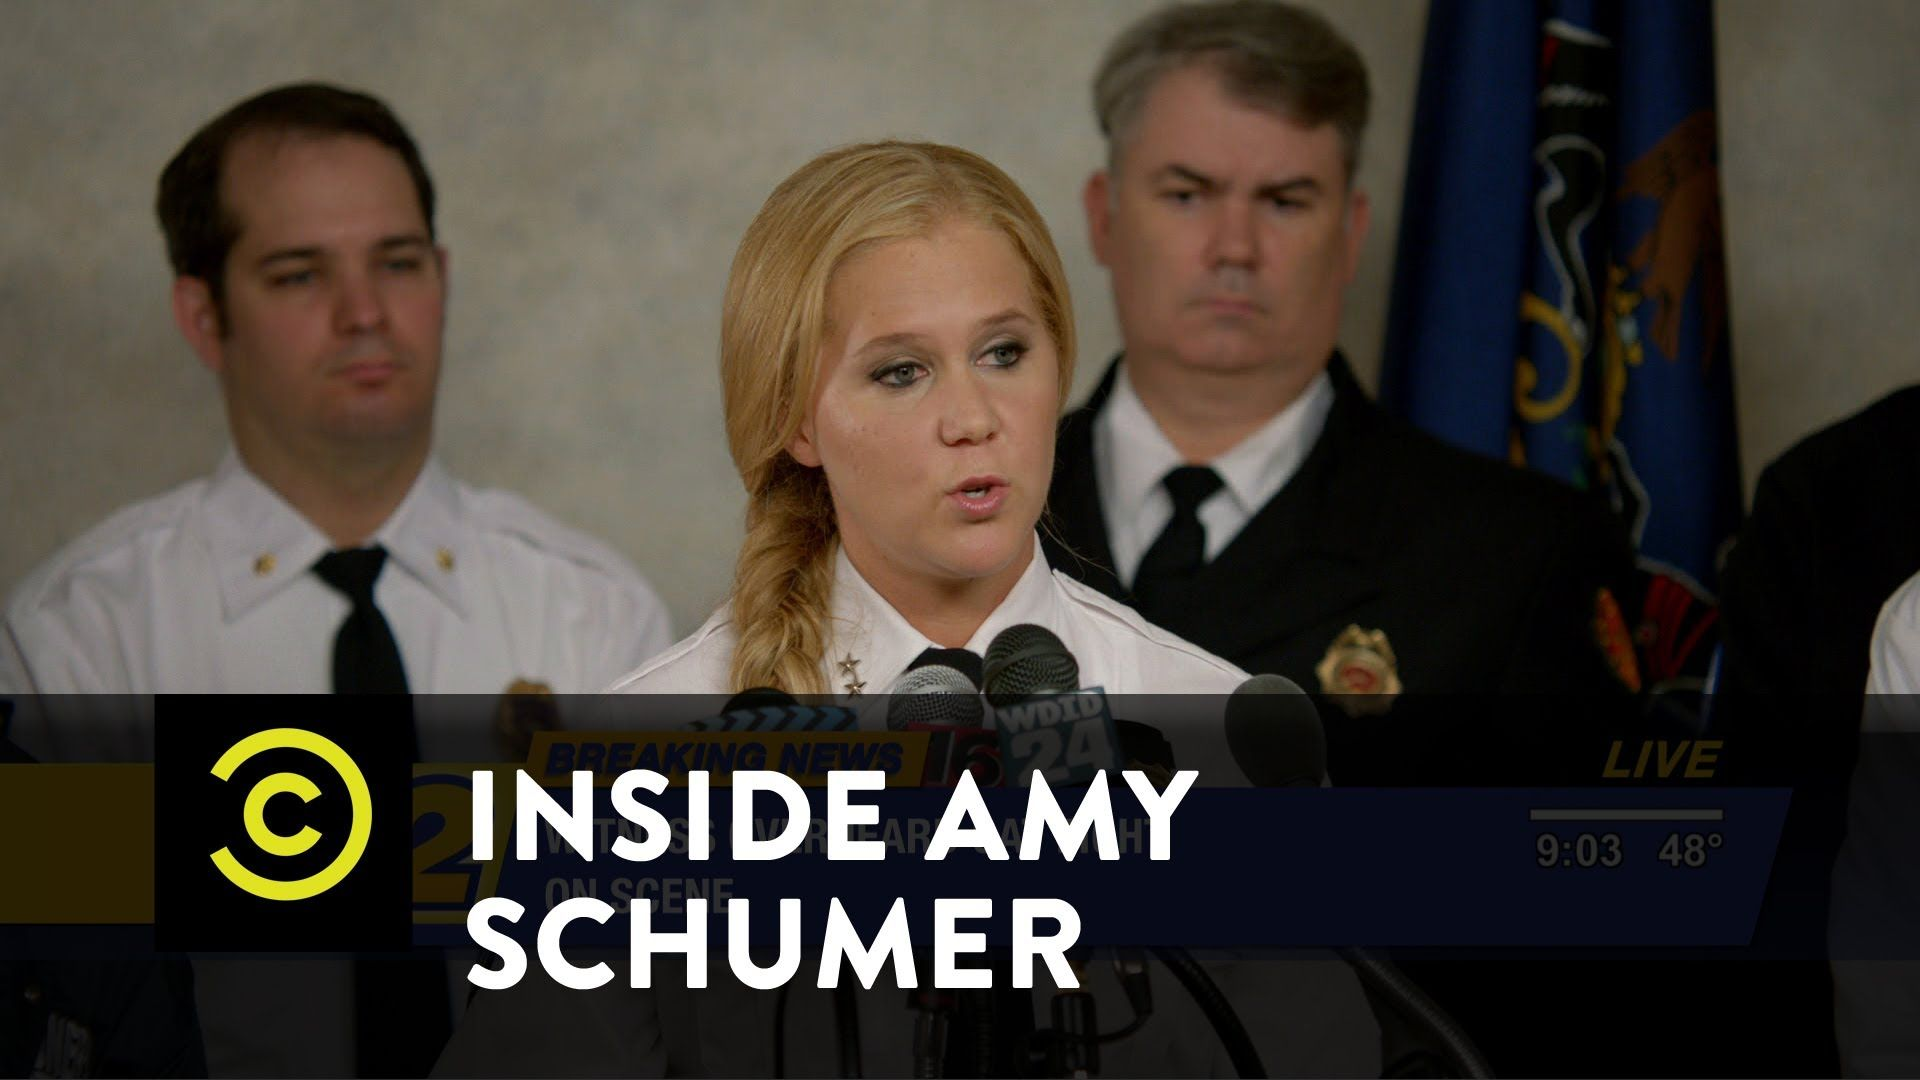 inside amy schumer bachelorette party disaster